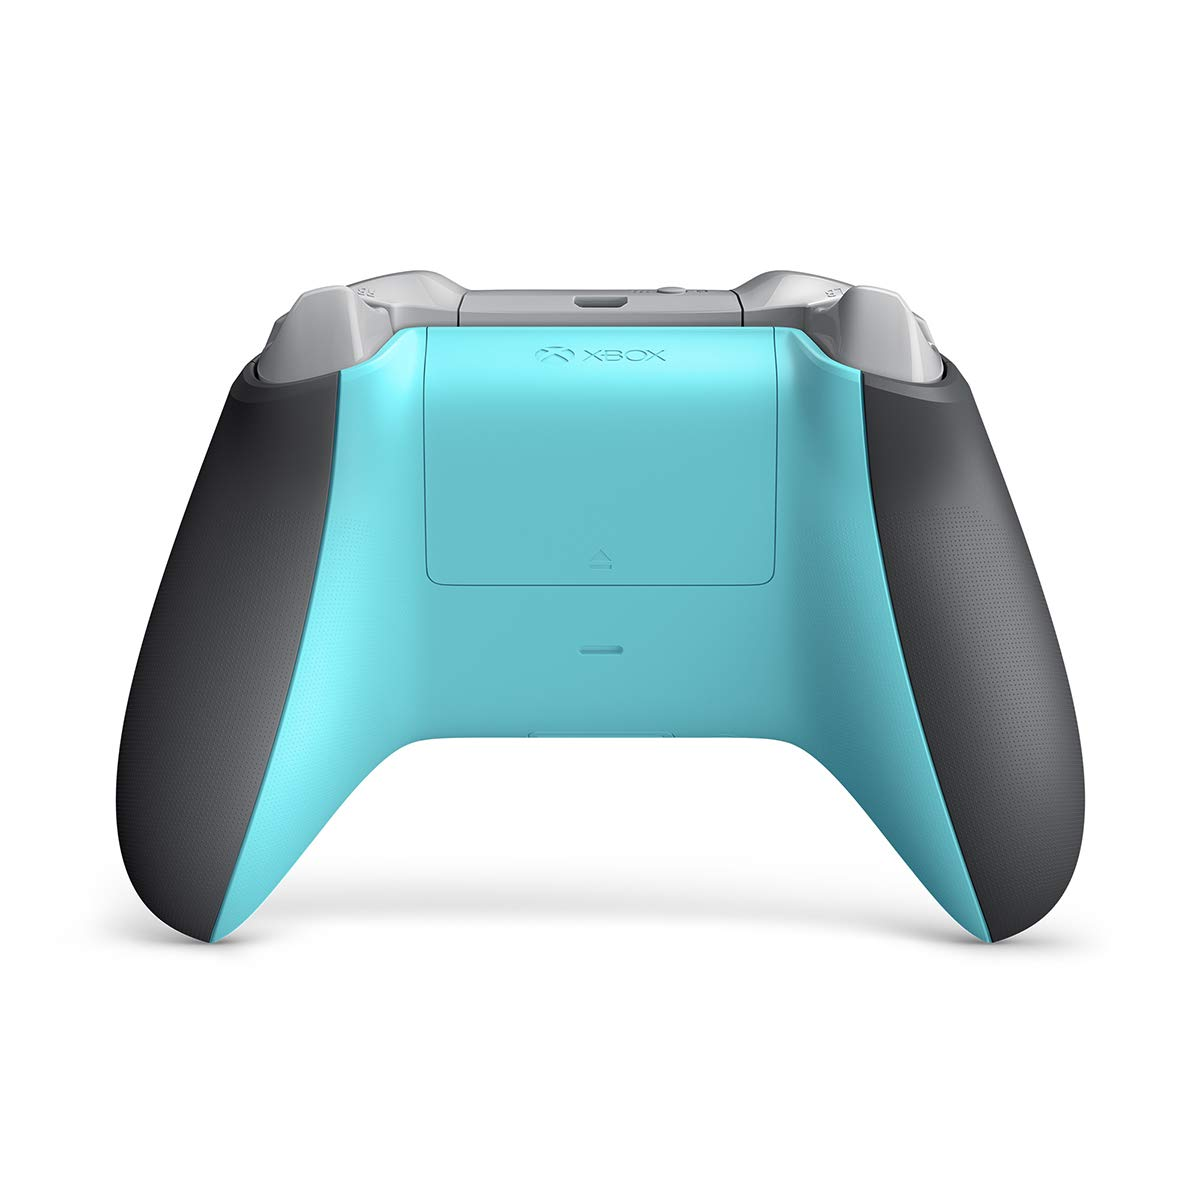 Xbox Wireless Controller - Grey and Blue by Microsoft (Image #2)